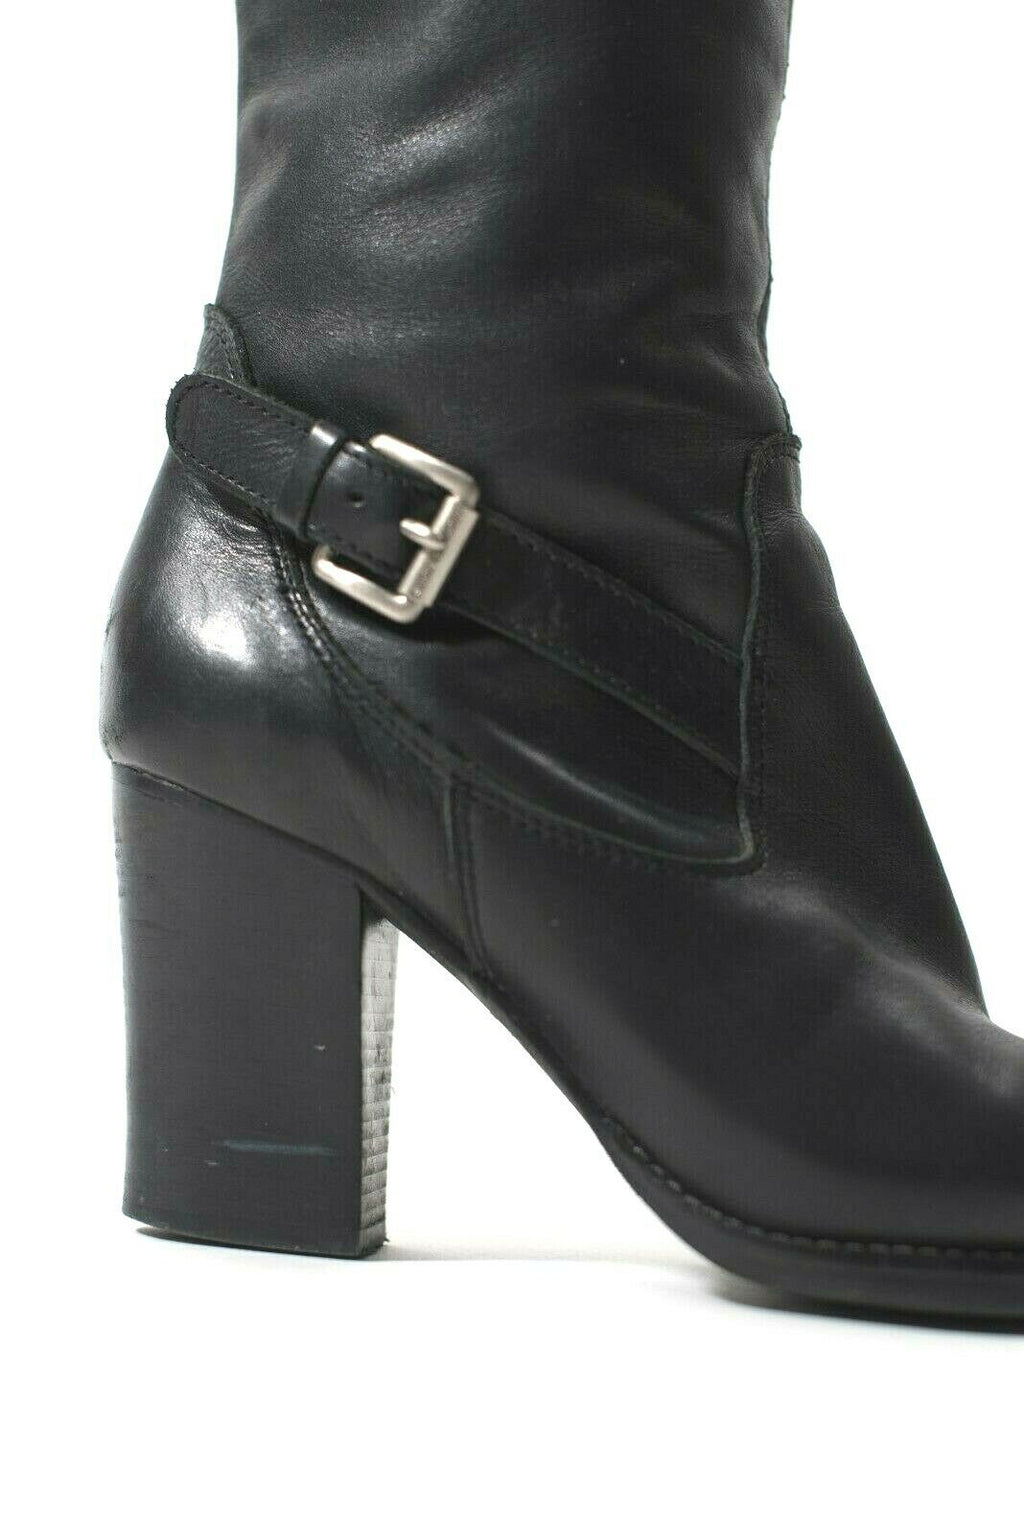 Michael Kors Womens Size 9 Black Boots Tall High Heel Buckle Strap Buckle Shoes